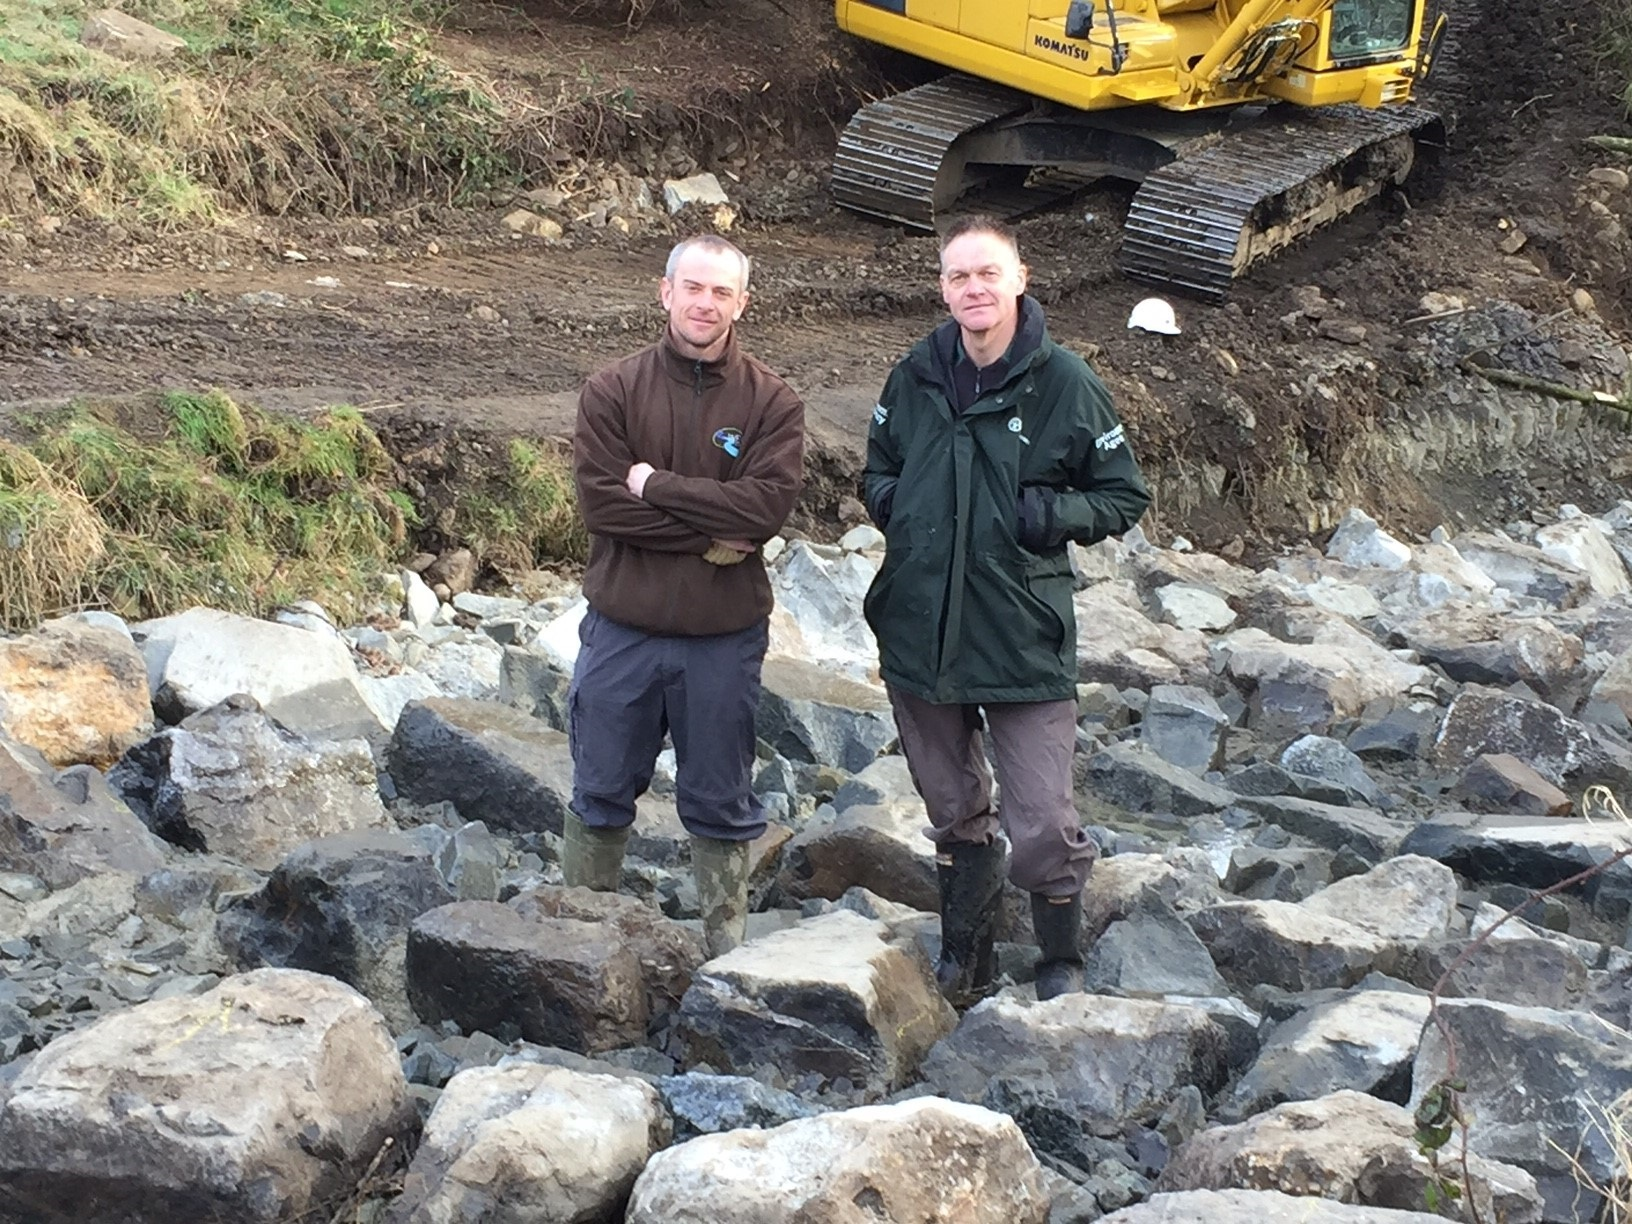 PASS: From left, Steve Hudson from Wear Rivers Trust and Paul Frear from the Environment Agency at Brancepeth Beck